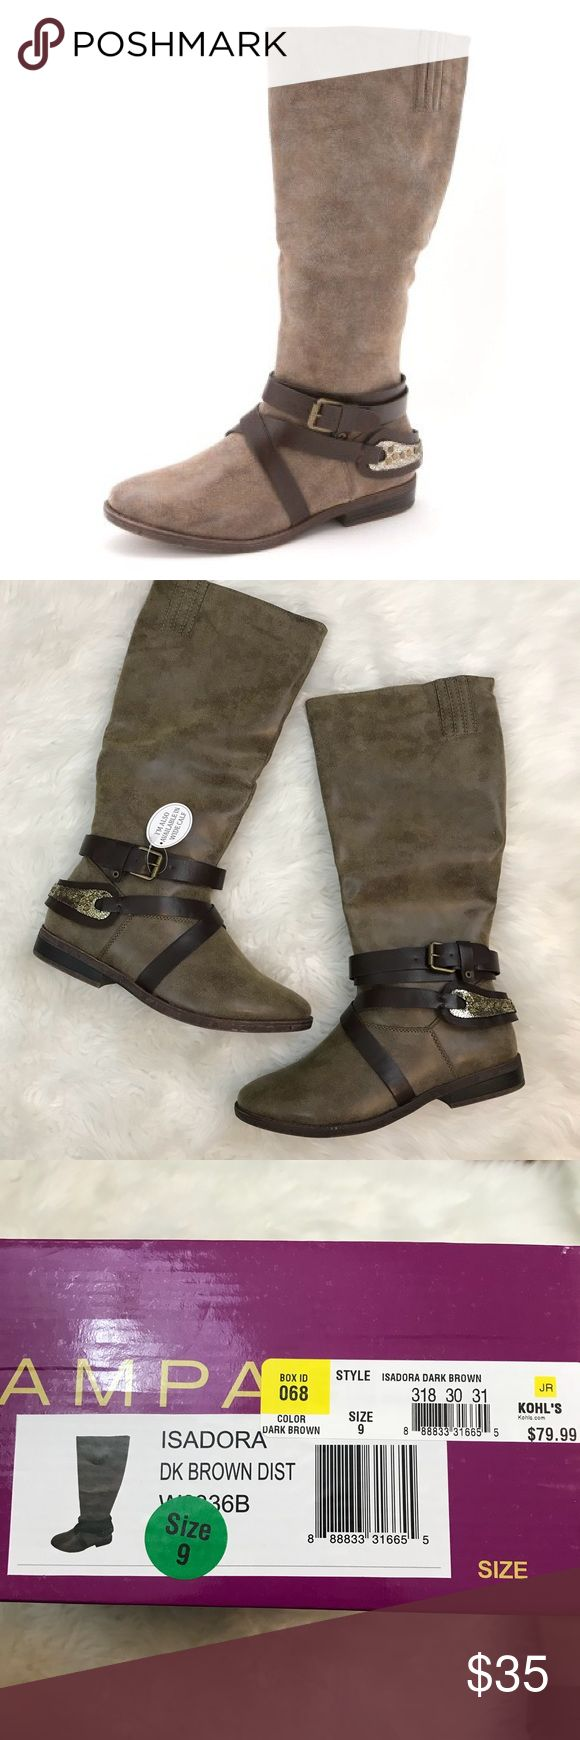 NIB Isadora Dark Brown Rampage Riding Boots sz 9 New in box! (No box top was included) Rampage riding boots. Size 9. Dark brown. Half zip. Mid calf length. Approx 0.5 inch heel. Rampage Shoes Combat & Moto Boots